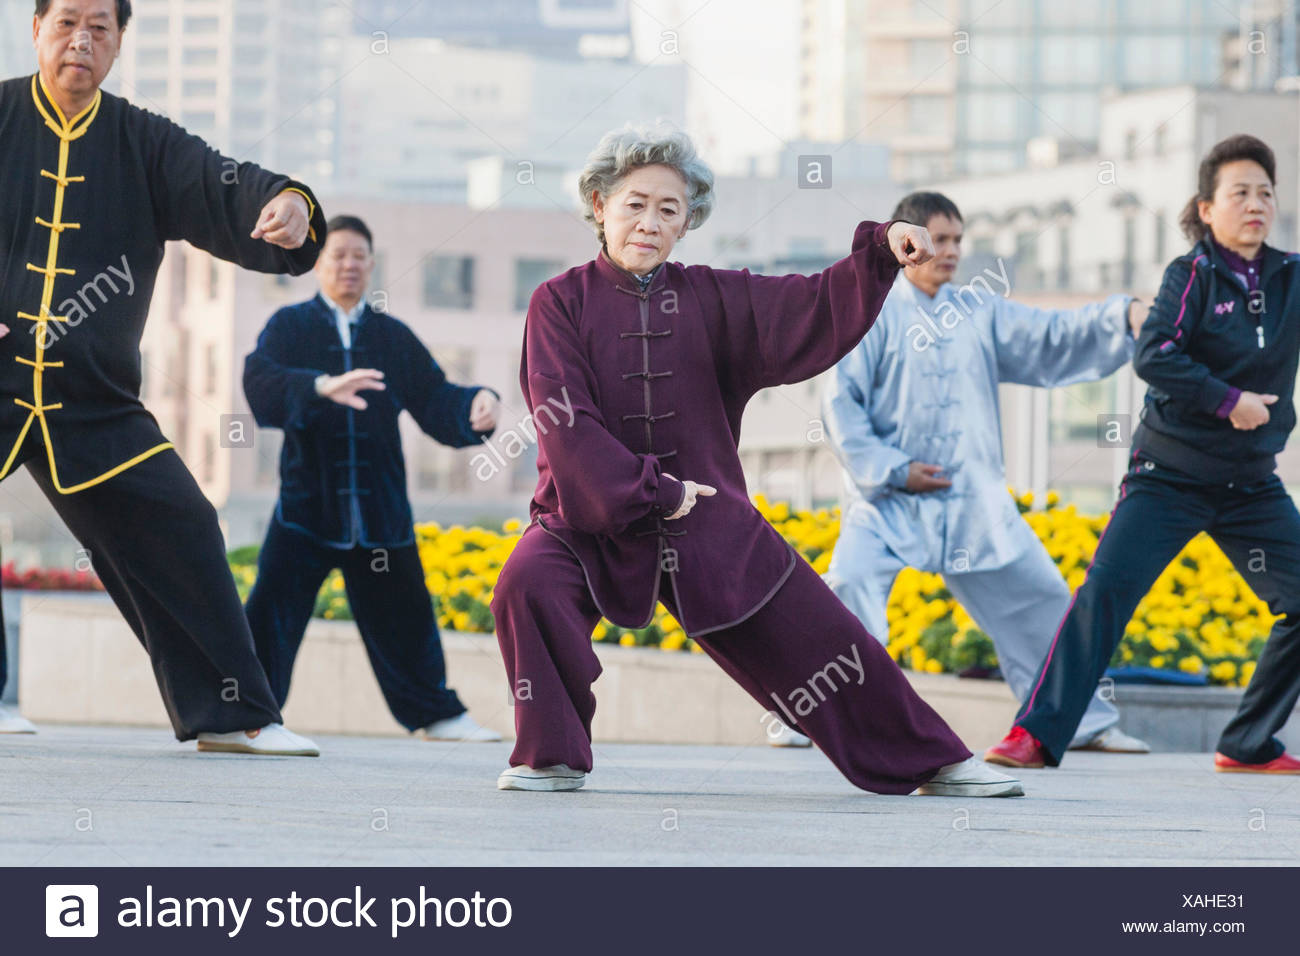 China, Shanghai, The Bund, Elderly Couple Practicing Tai chi - Stock Image